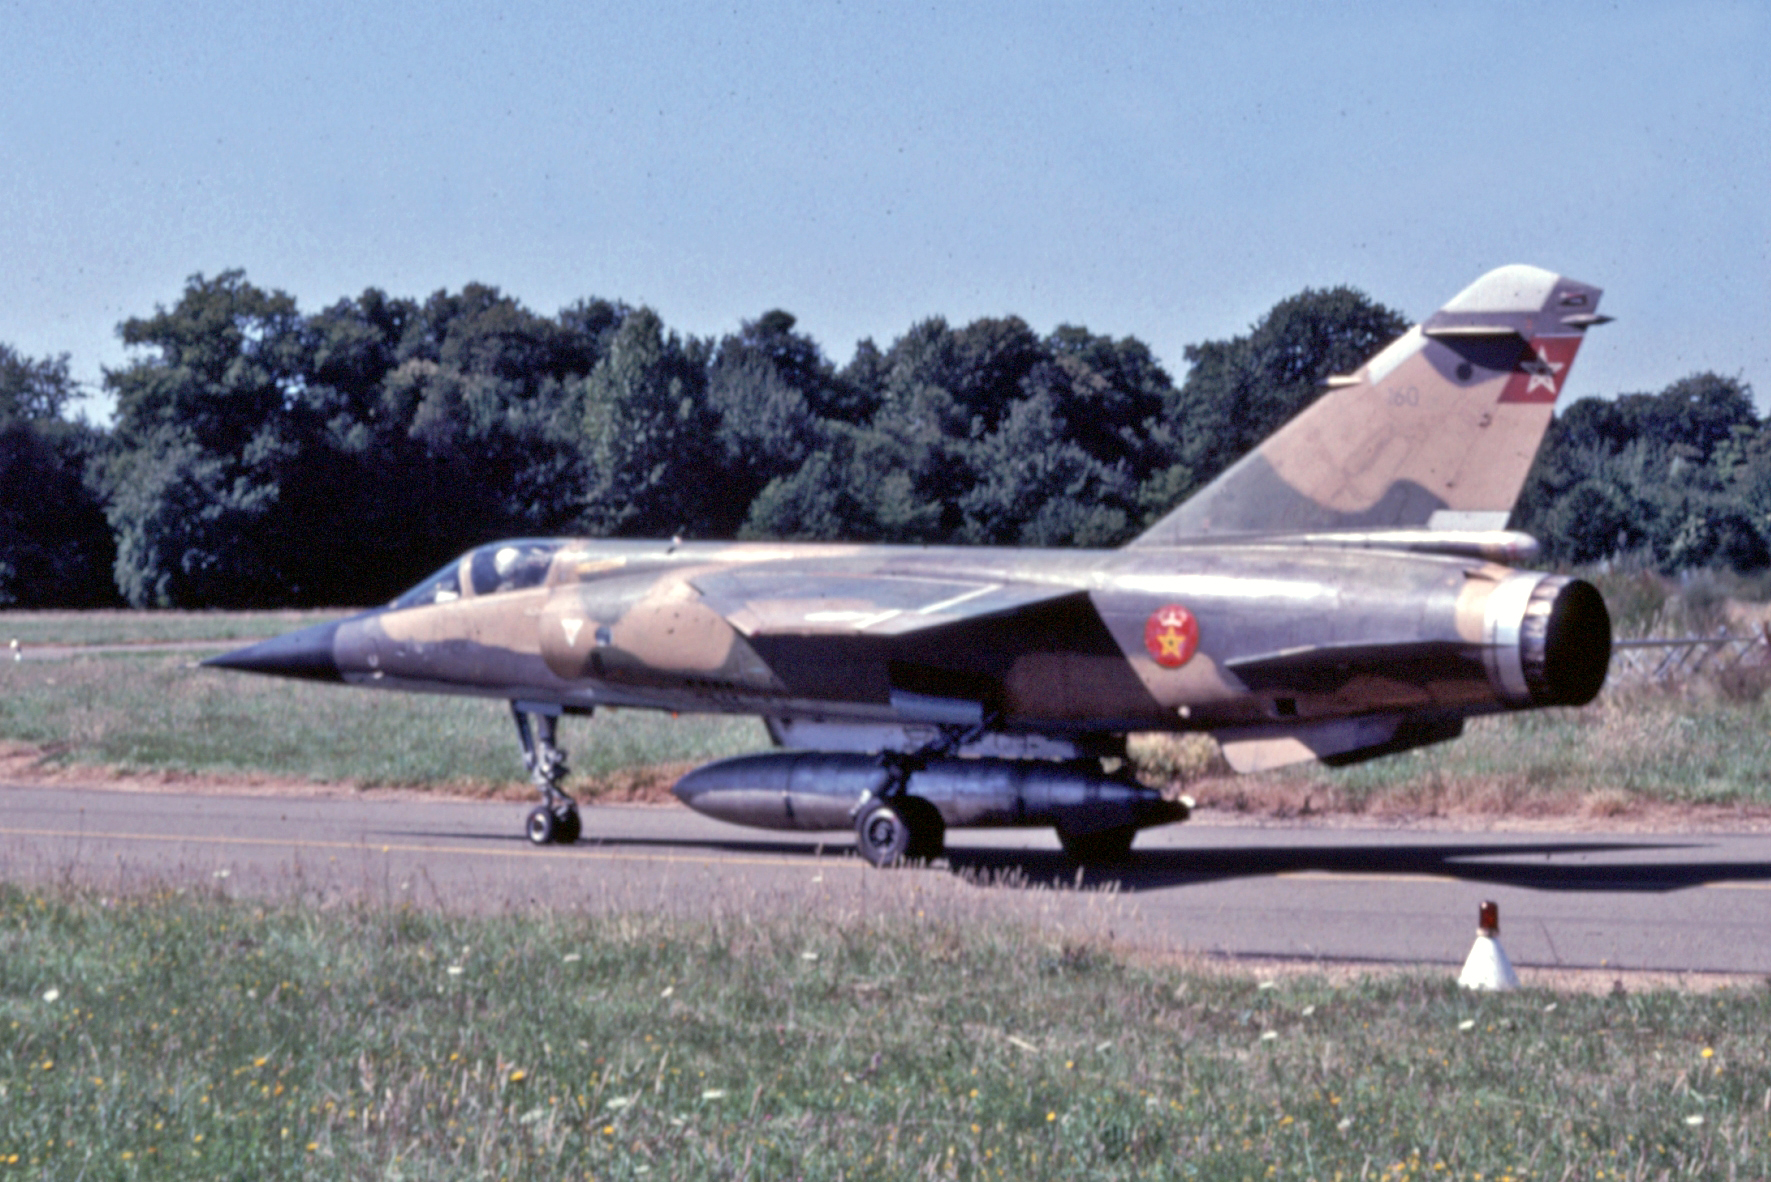 FRA: Photos Mirage F1 - Page 15 31436945957_dc4d5ed1b6_o